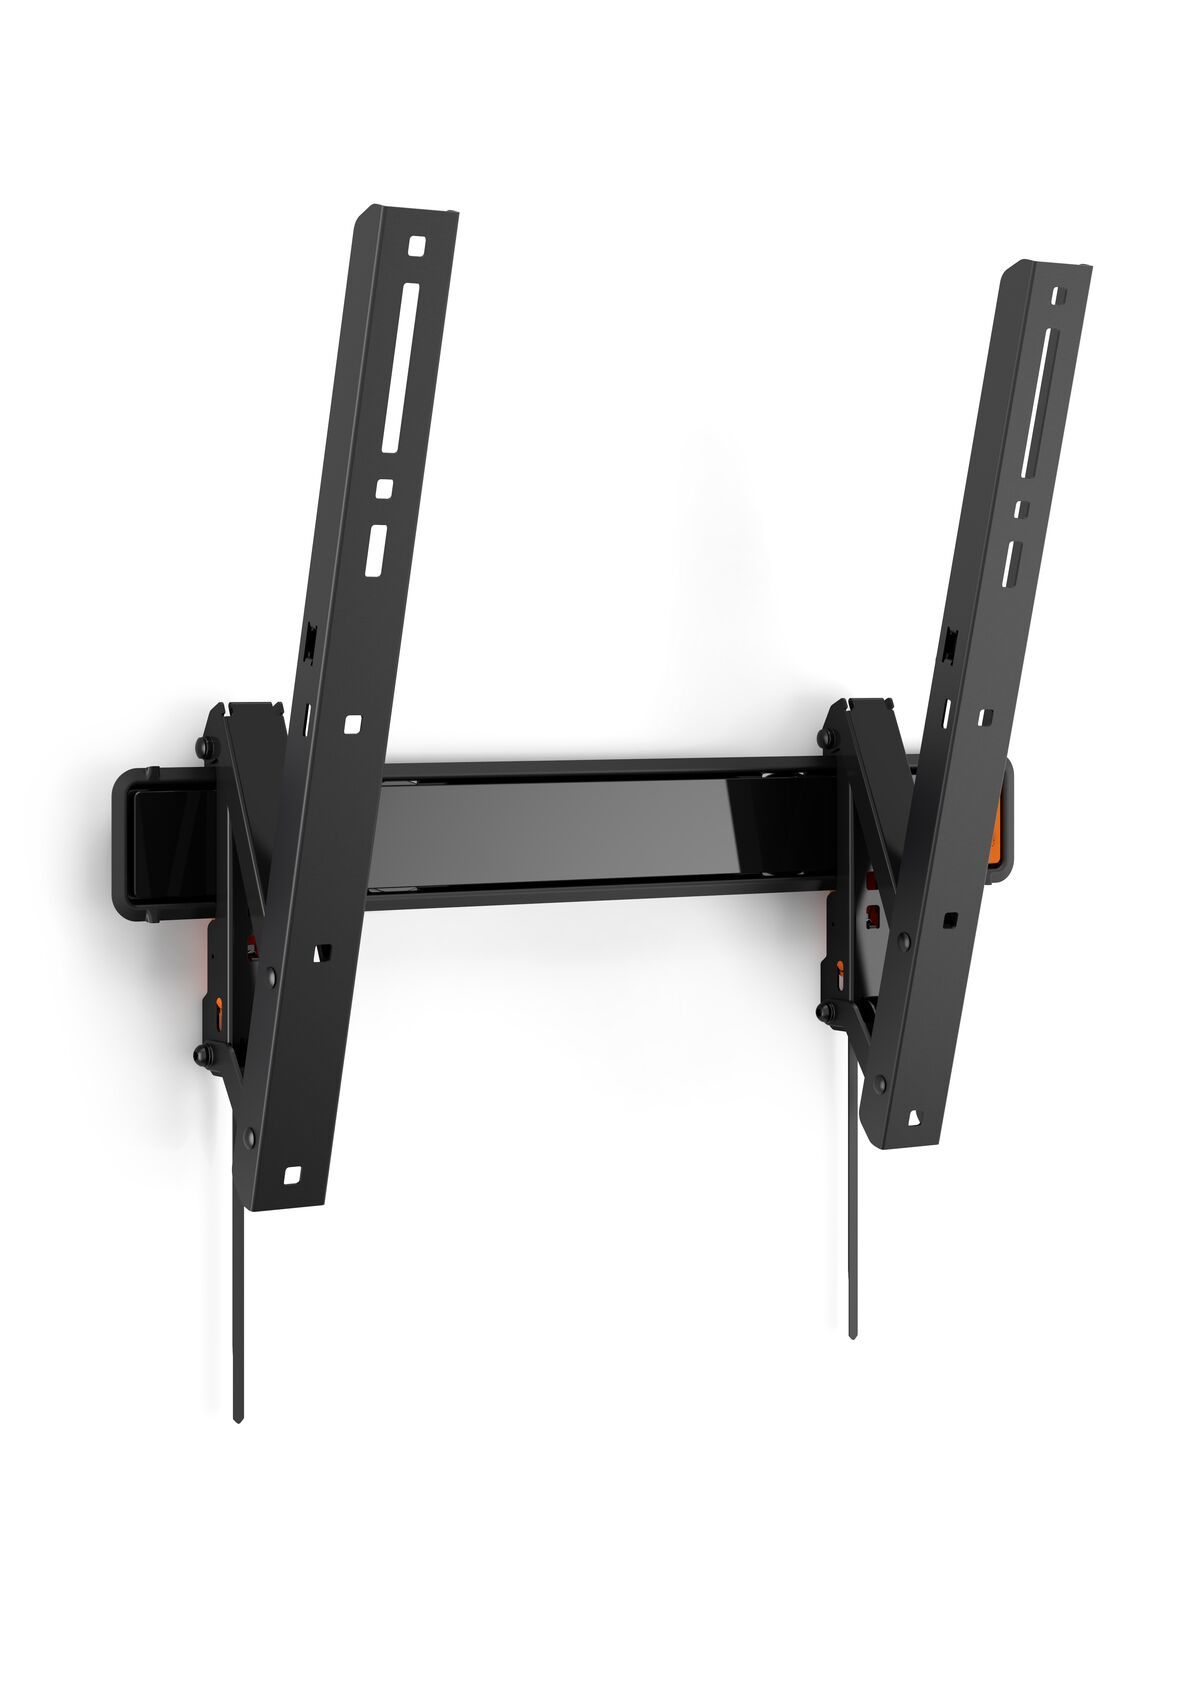 Vogel's WALL 3215 Tilting TV Wall Mount - Suitable for 32 up to 55 inch TVs up to 30 kg - Tilt up to 15° - Product